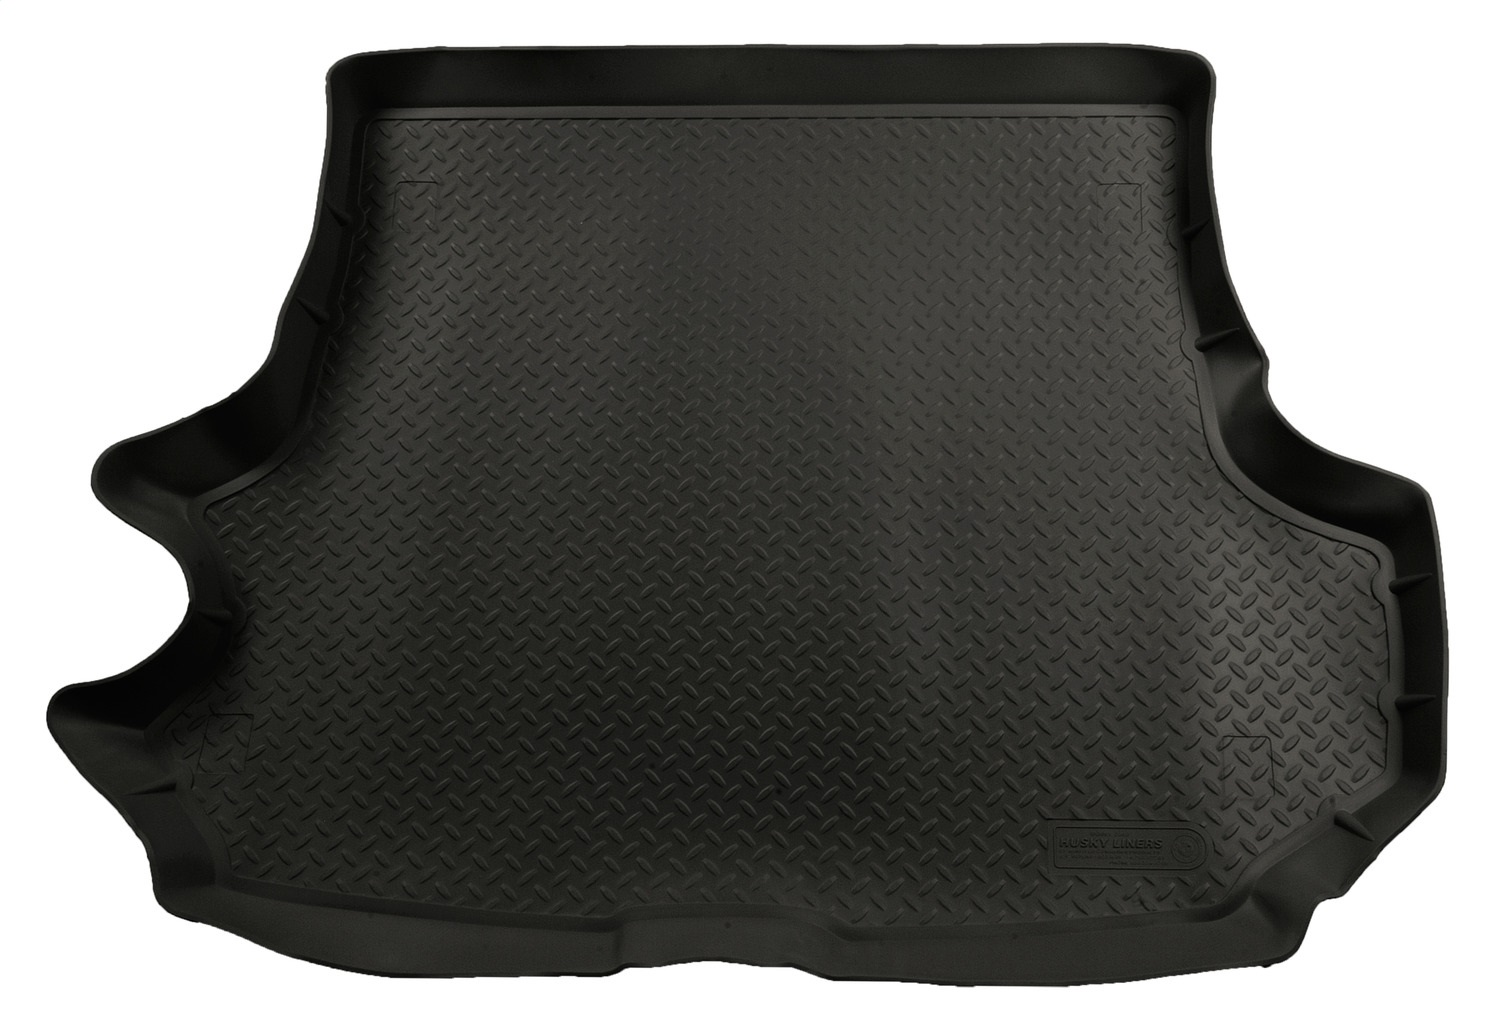 Husky Liners 20601 Classic Style Cargo Liner Fits 99-04 Grand Cherokee